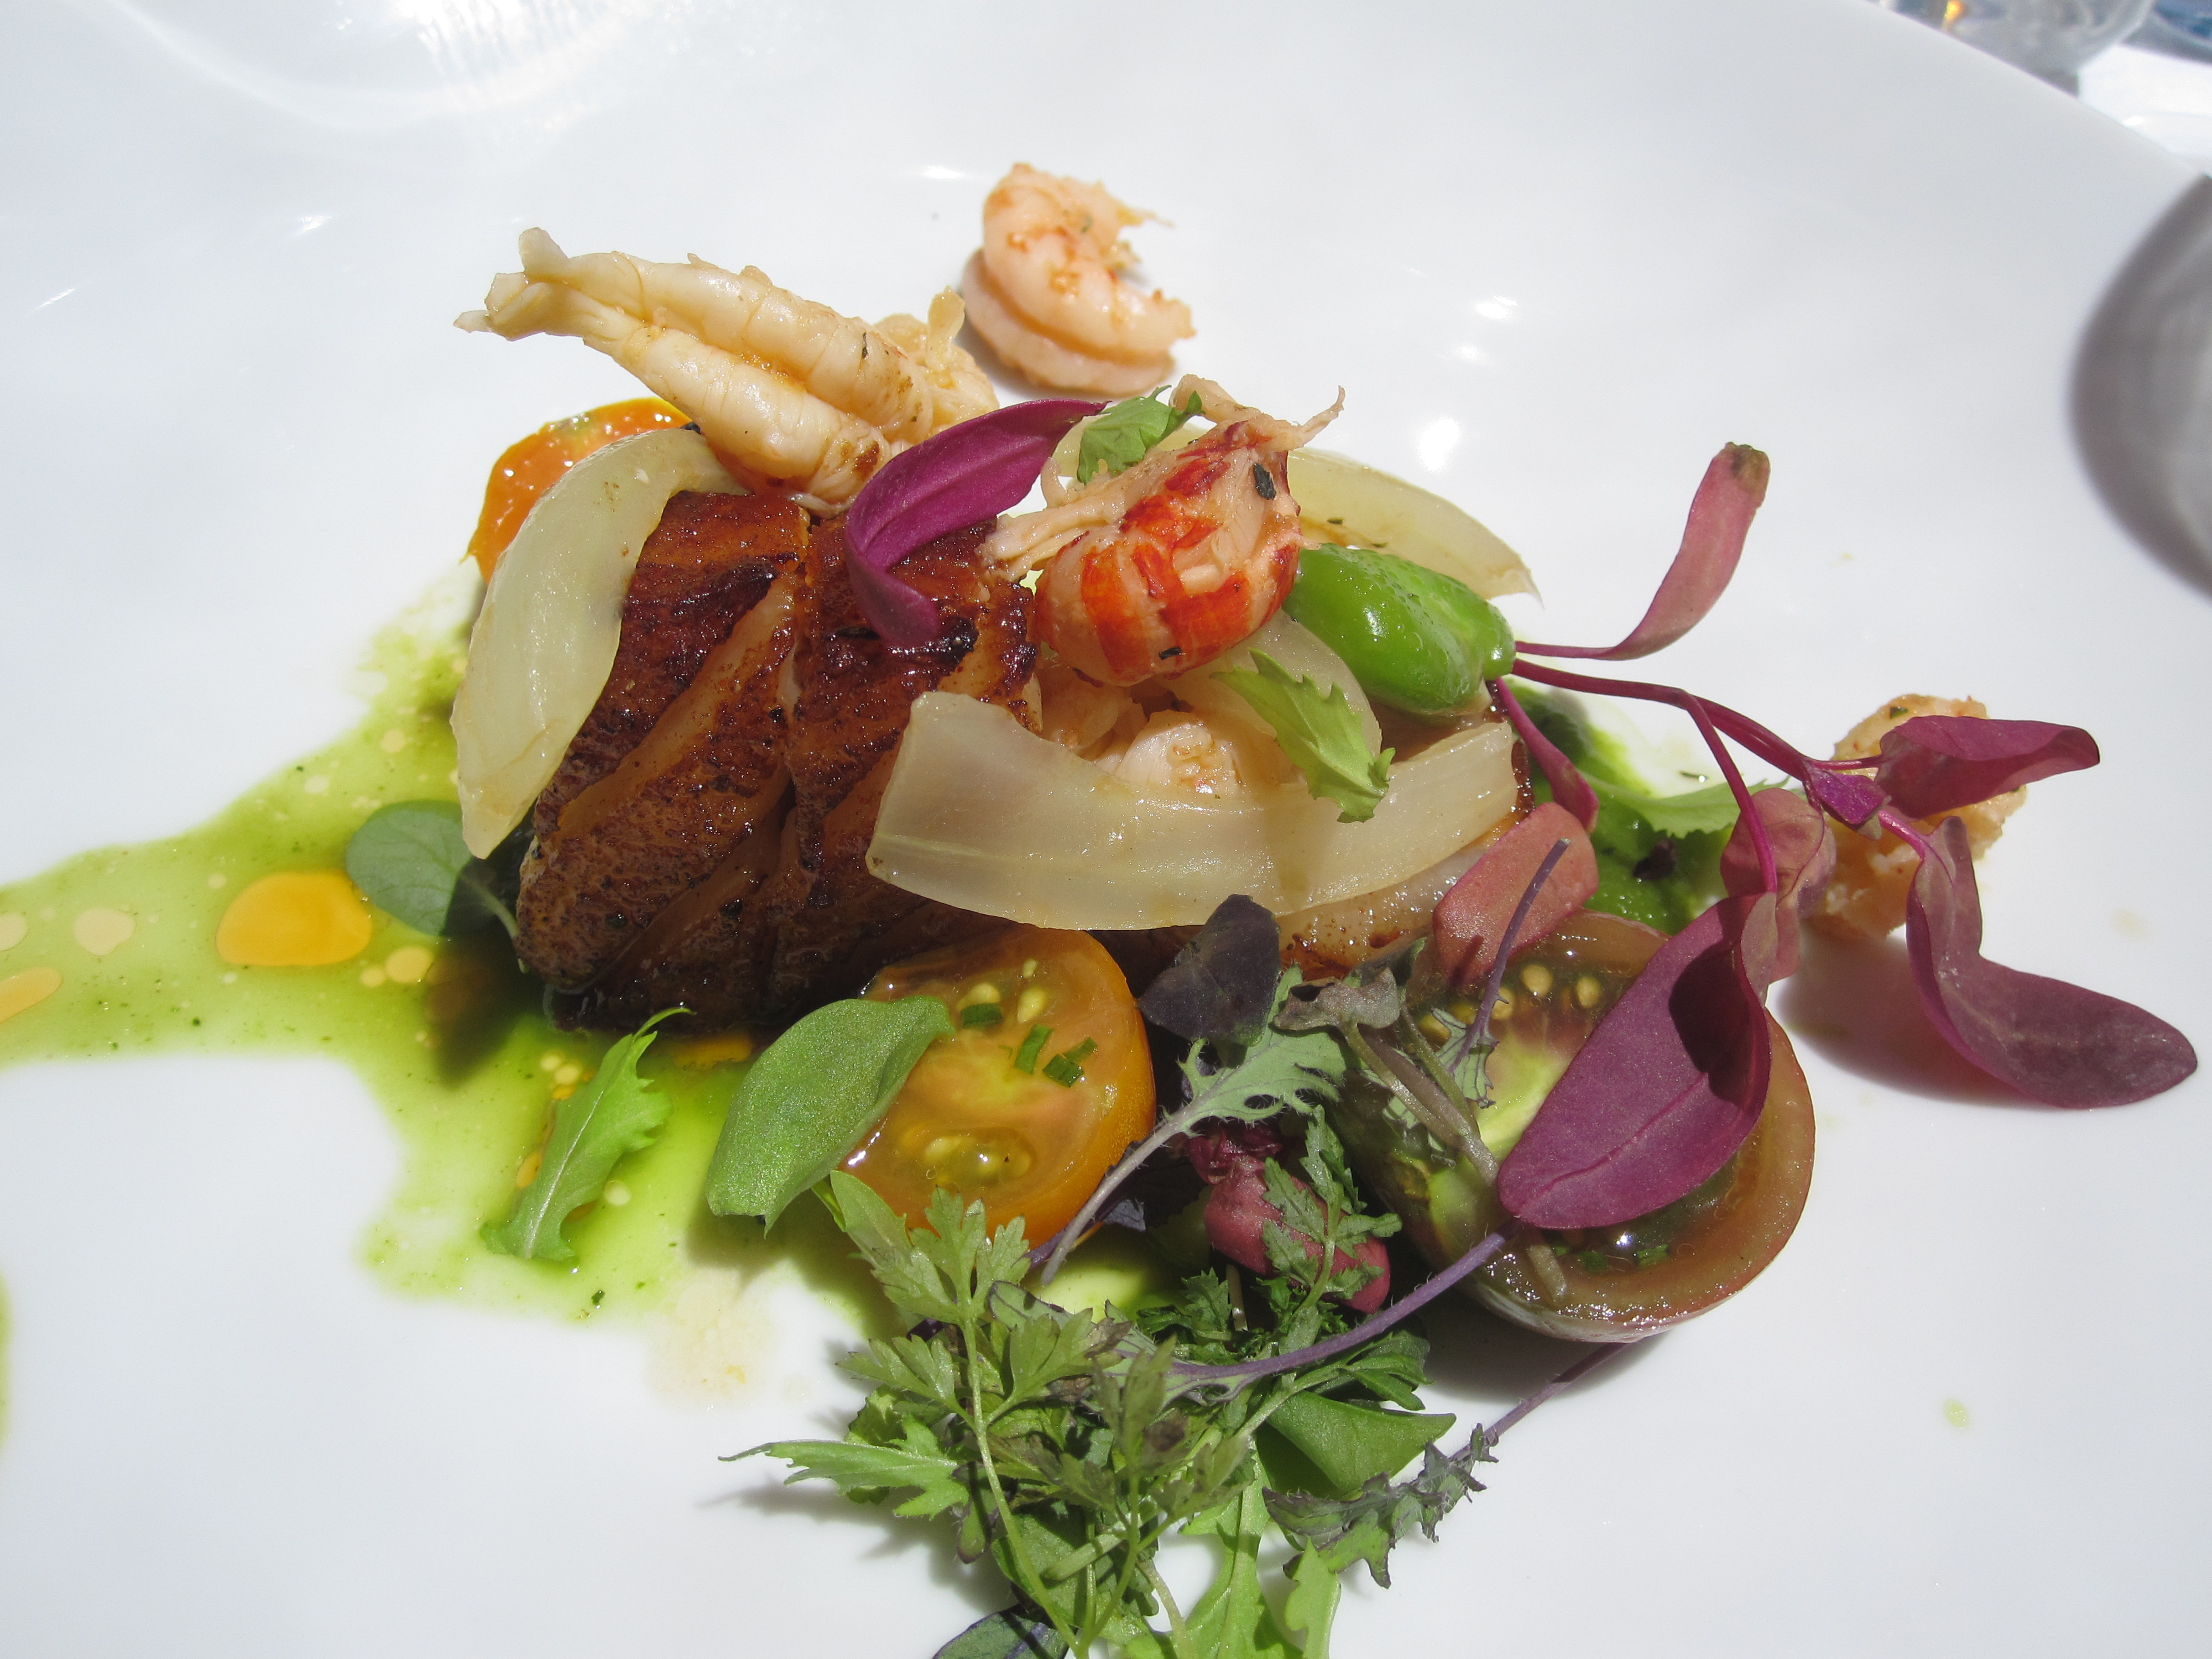 Cane lacquered Berkshire pork belly was topped with Louisiana crawfish tails that tasted a lot like shrimp. It was an alternative but tasty take on surf and turf.